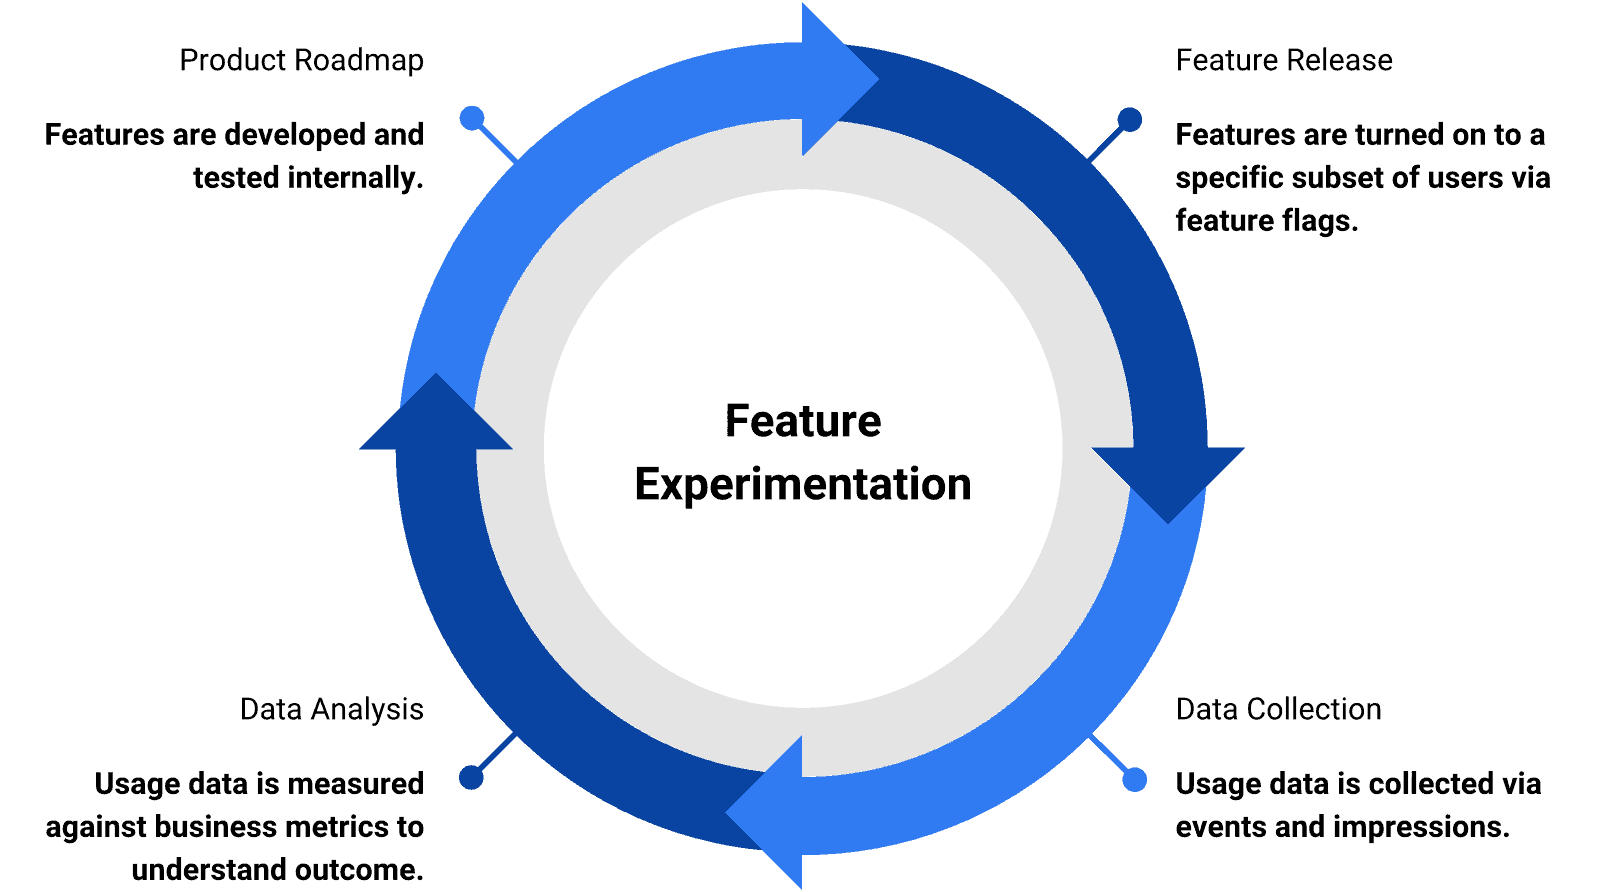 Feature experimentation closes the customer feedback loop